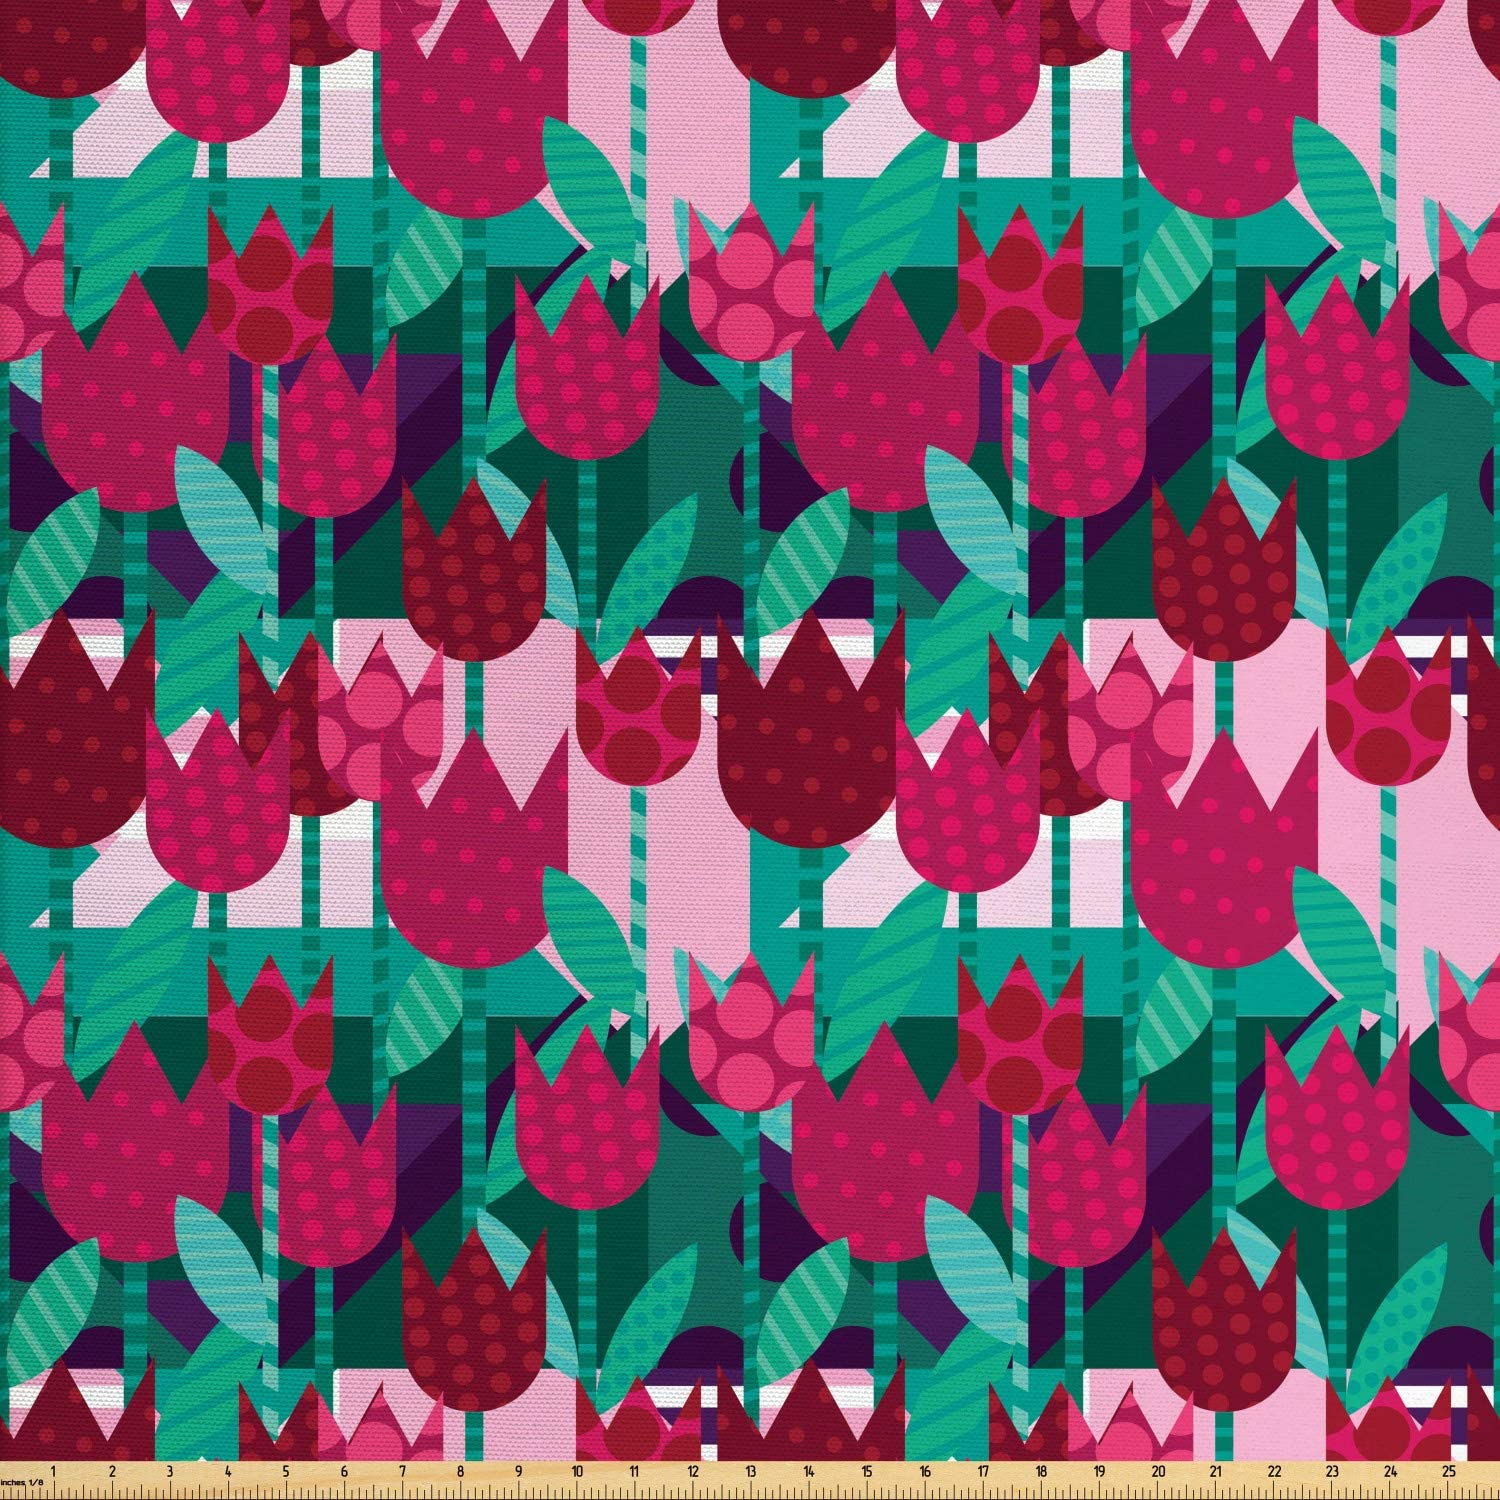 Ambesonne Floral Fabric by The Yard, Abstract Art Flower Polka Dotted Tulips on Geometric Background Illustration, Decorative Fabric for Upholstery and Home Accents, 1 Yard, Jade Green and Red